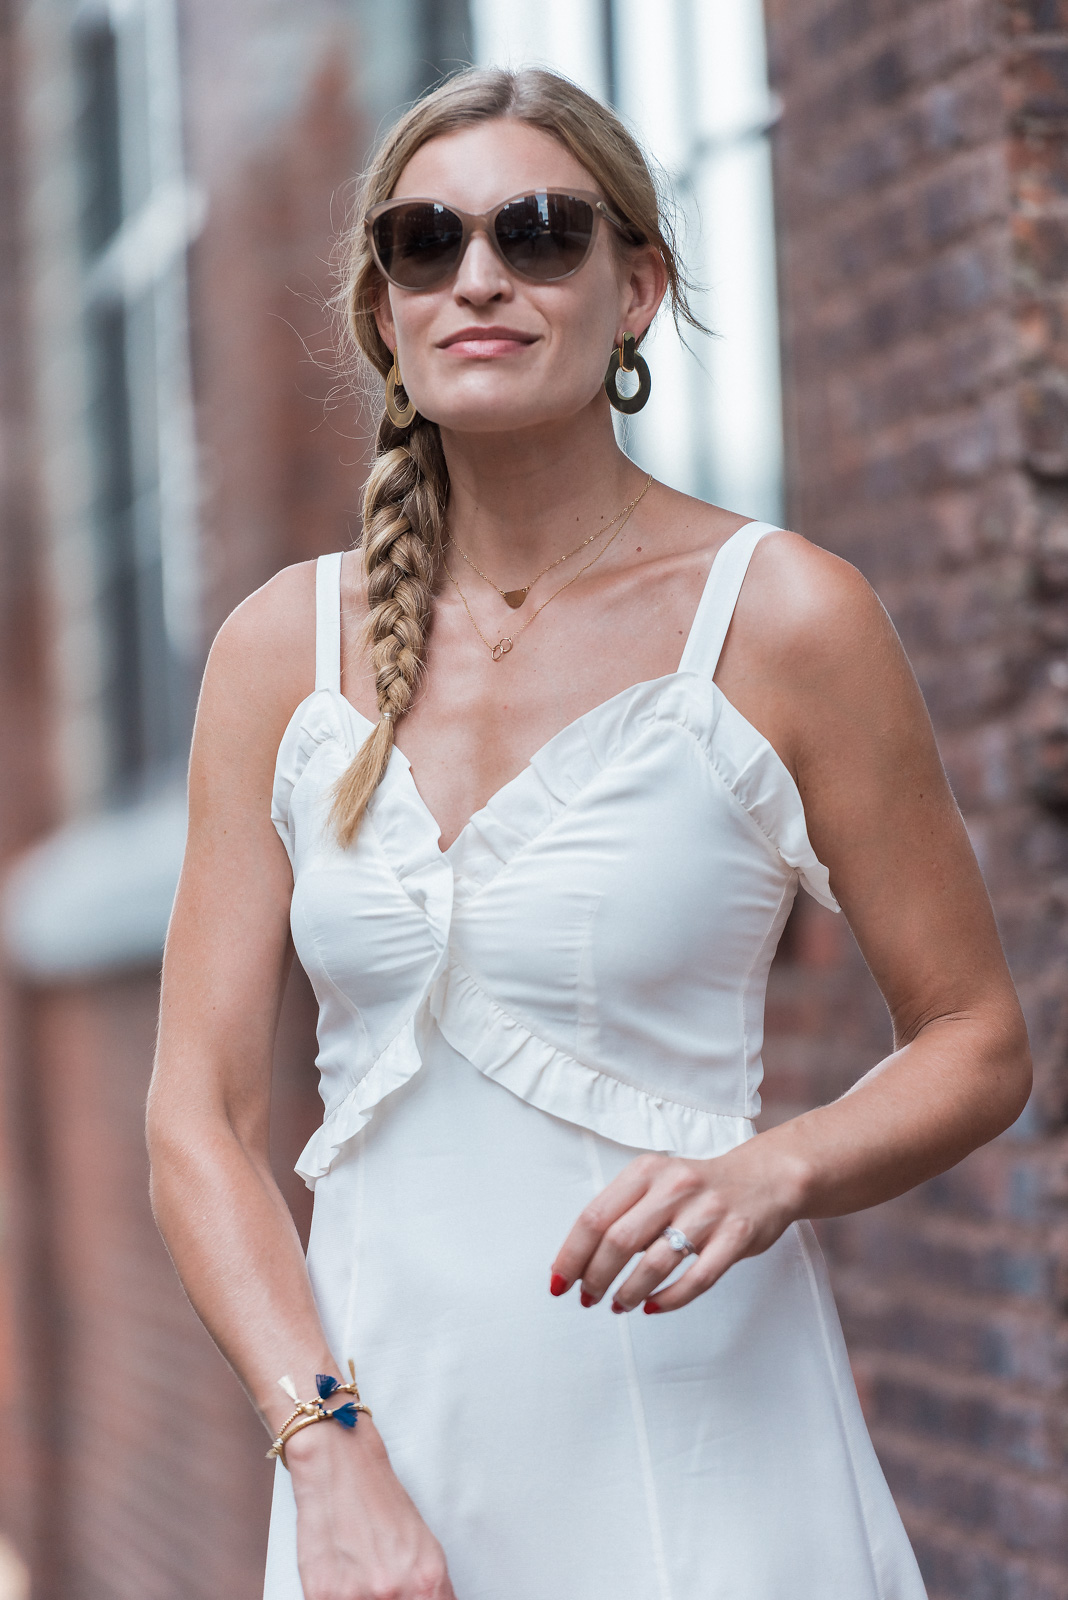 Laura Behnke The Life Actually Company the LWD & Other Stories White Dress